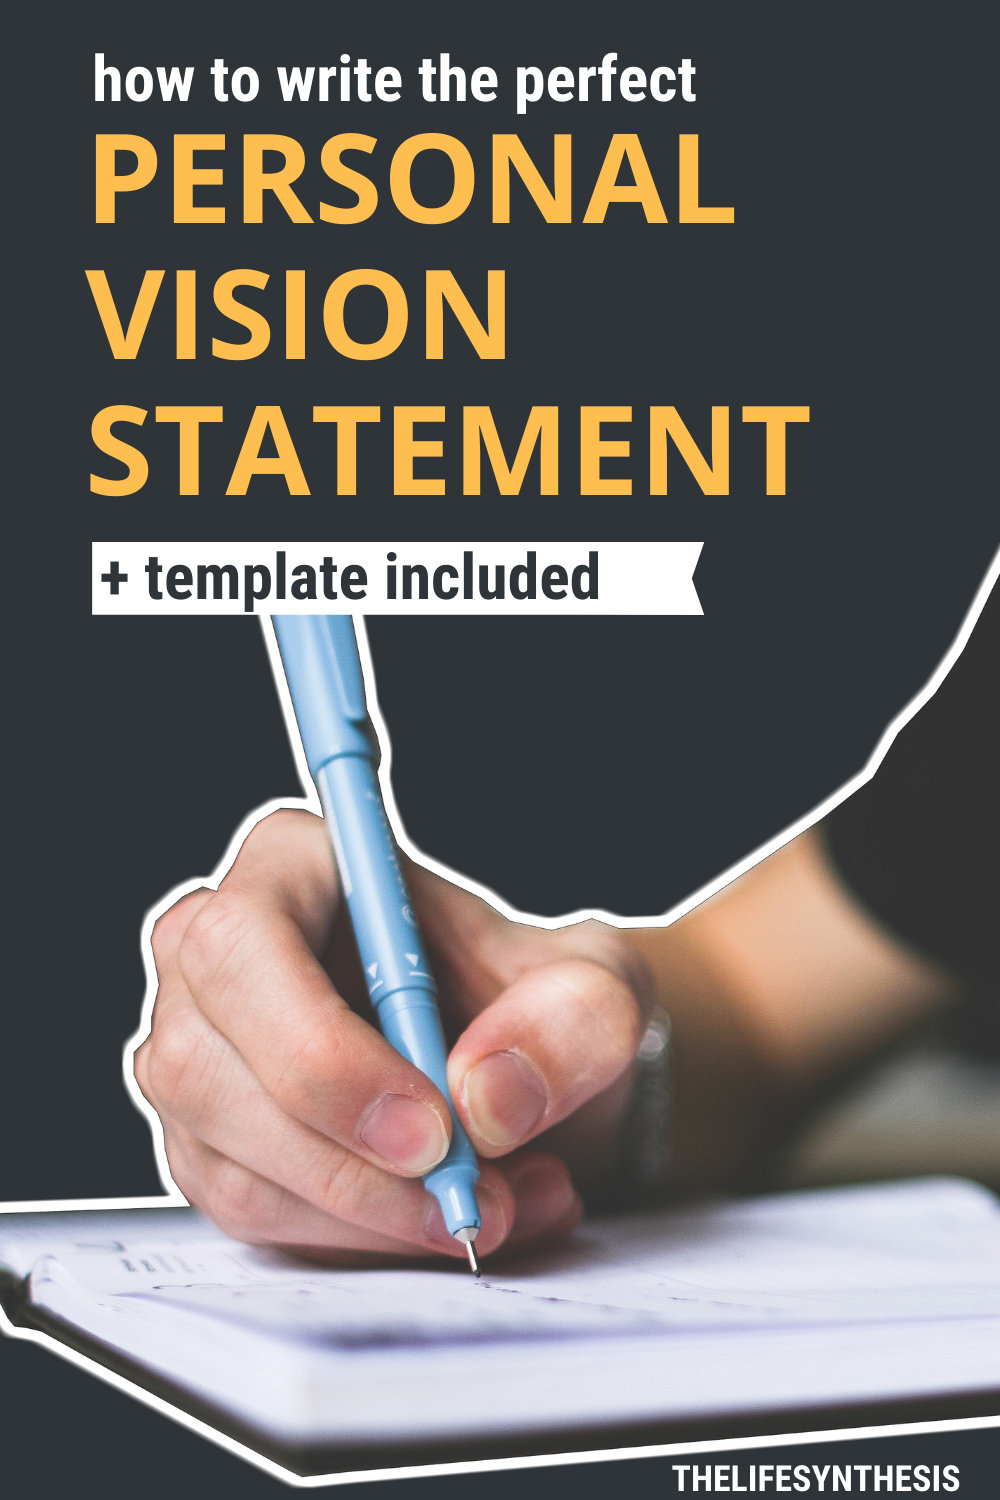 Personal Vision Statement Examples: 7 Impactful Models